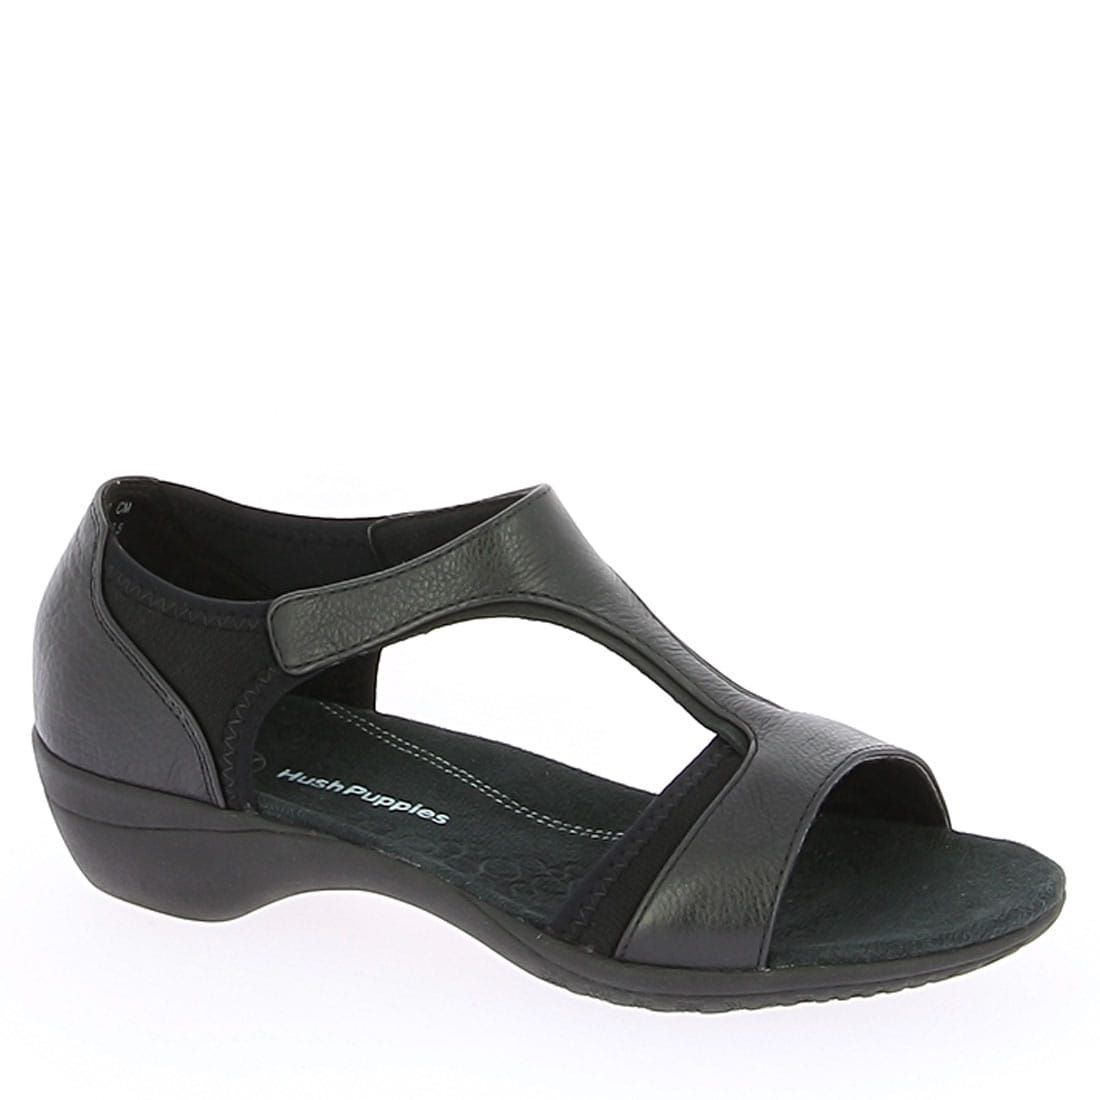 Women's Leather Sandals Hush Puppies